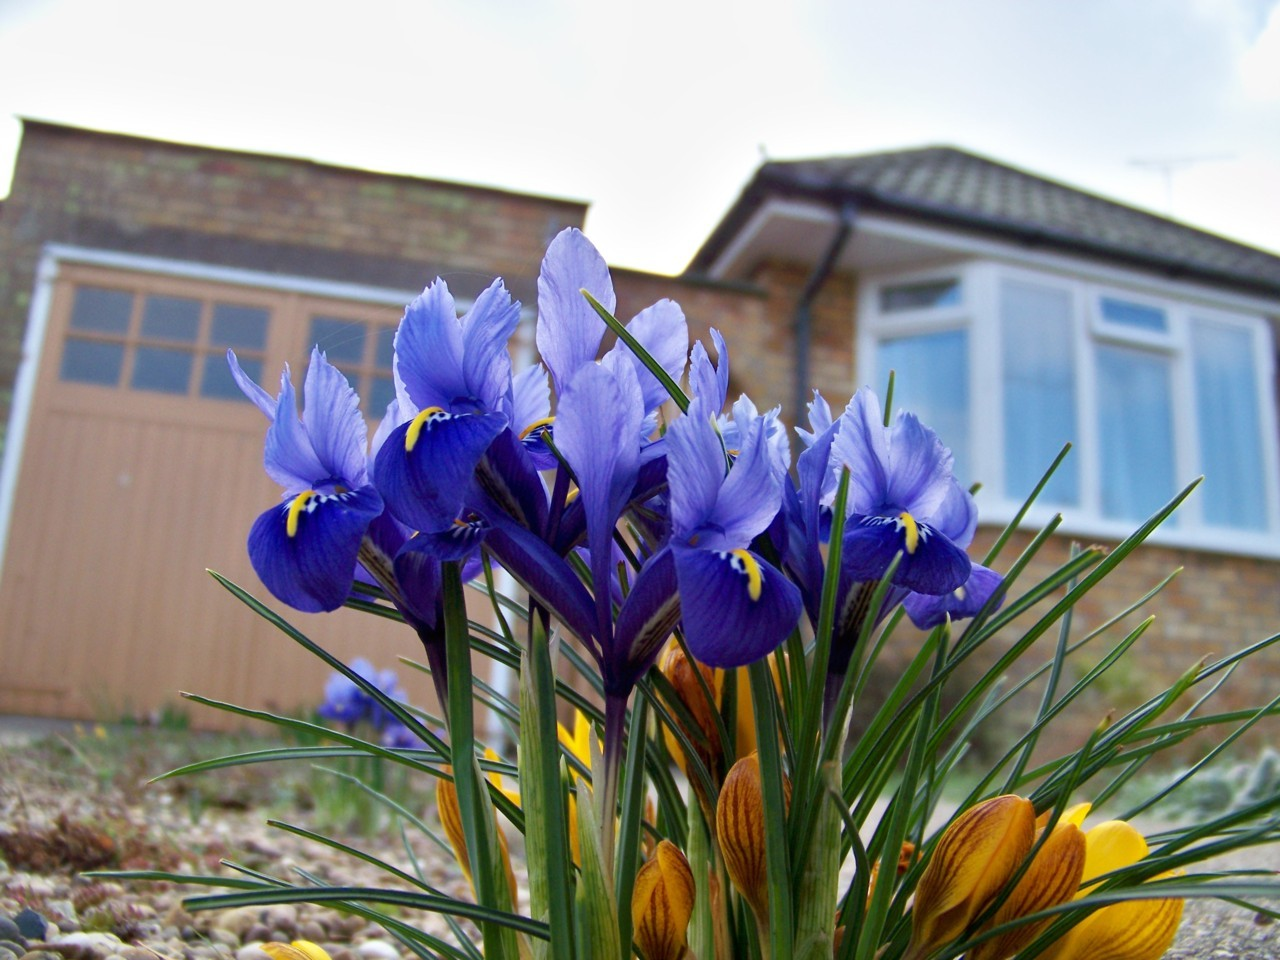 25th February 2012. Iris Reticulata growing in the drive at home.